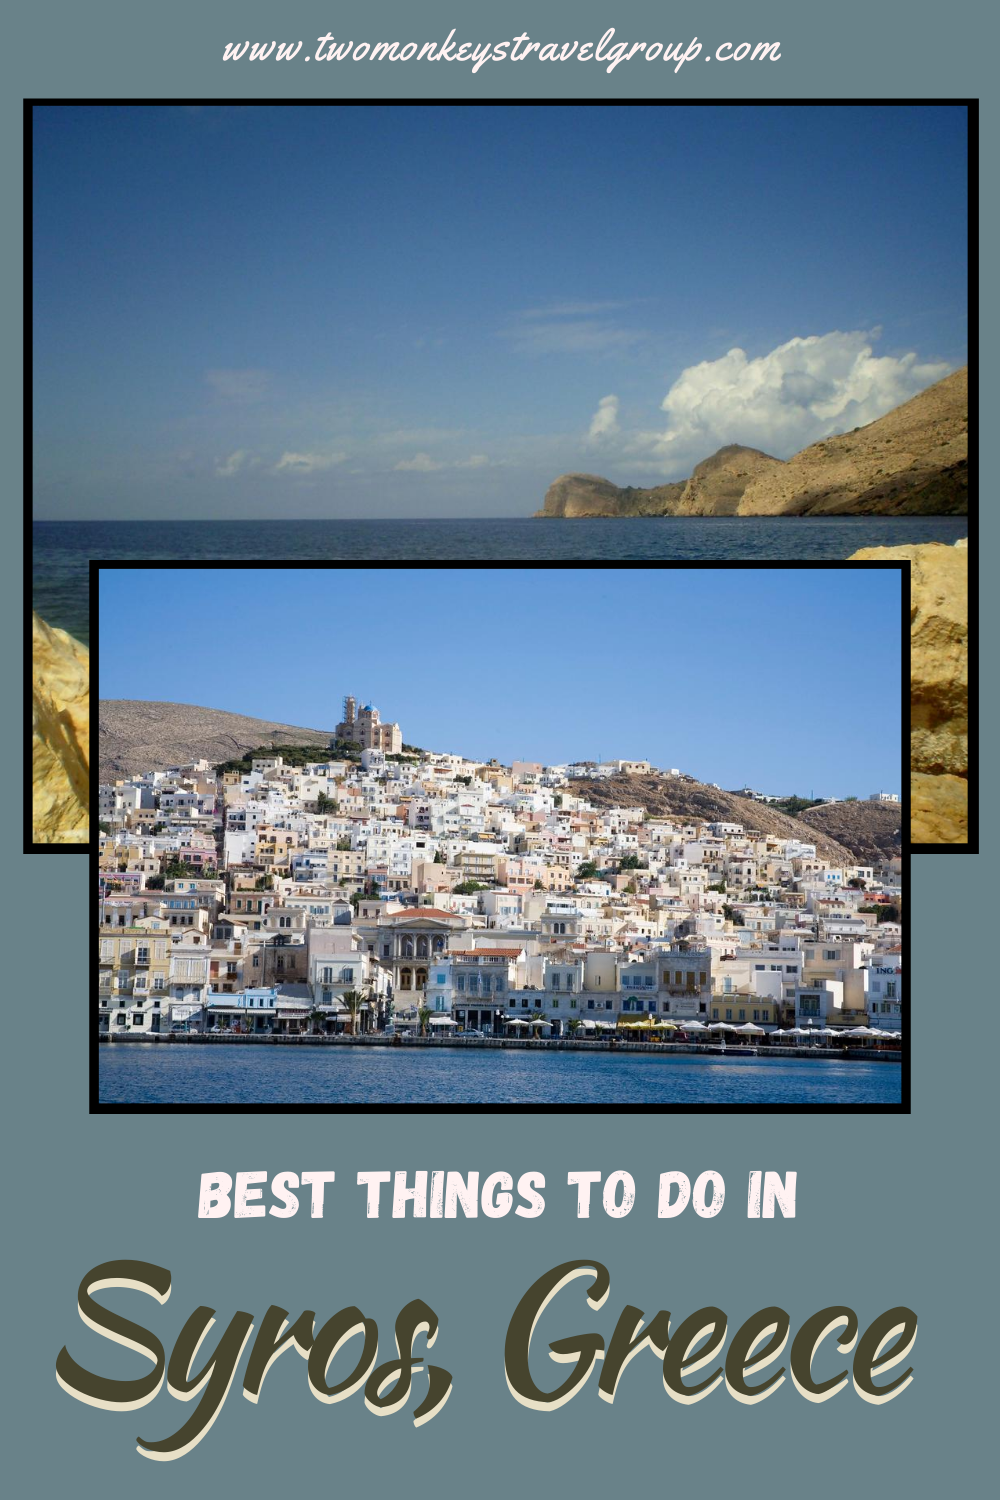 10 Best Things to do in Syros, Greece [with Suggested Tours]